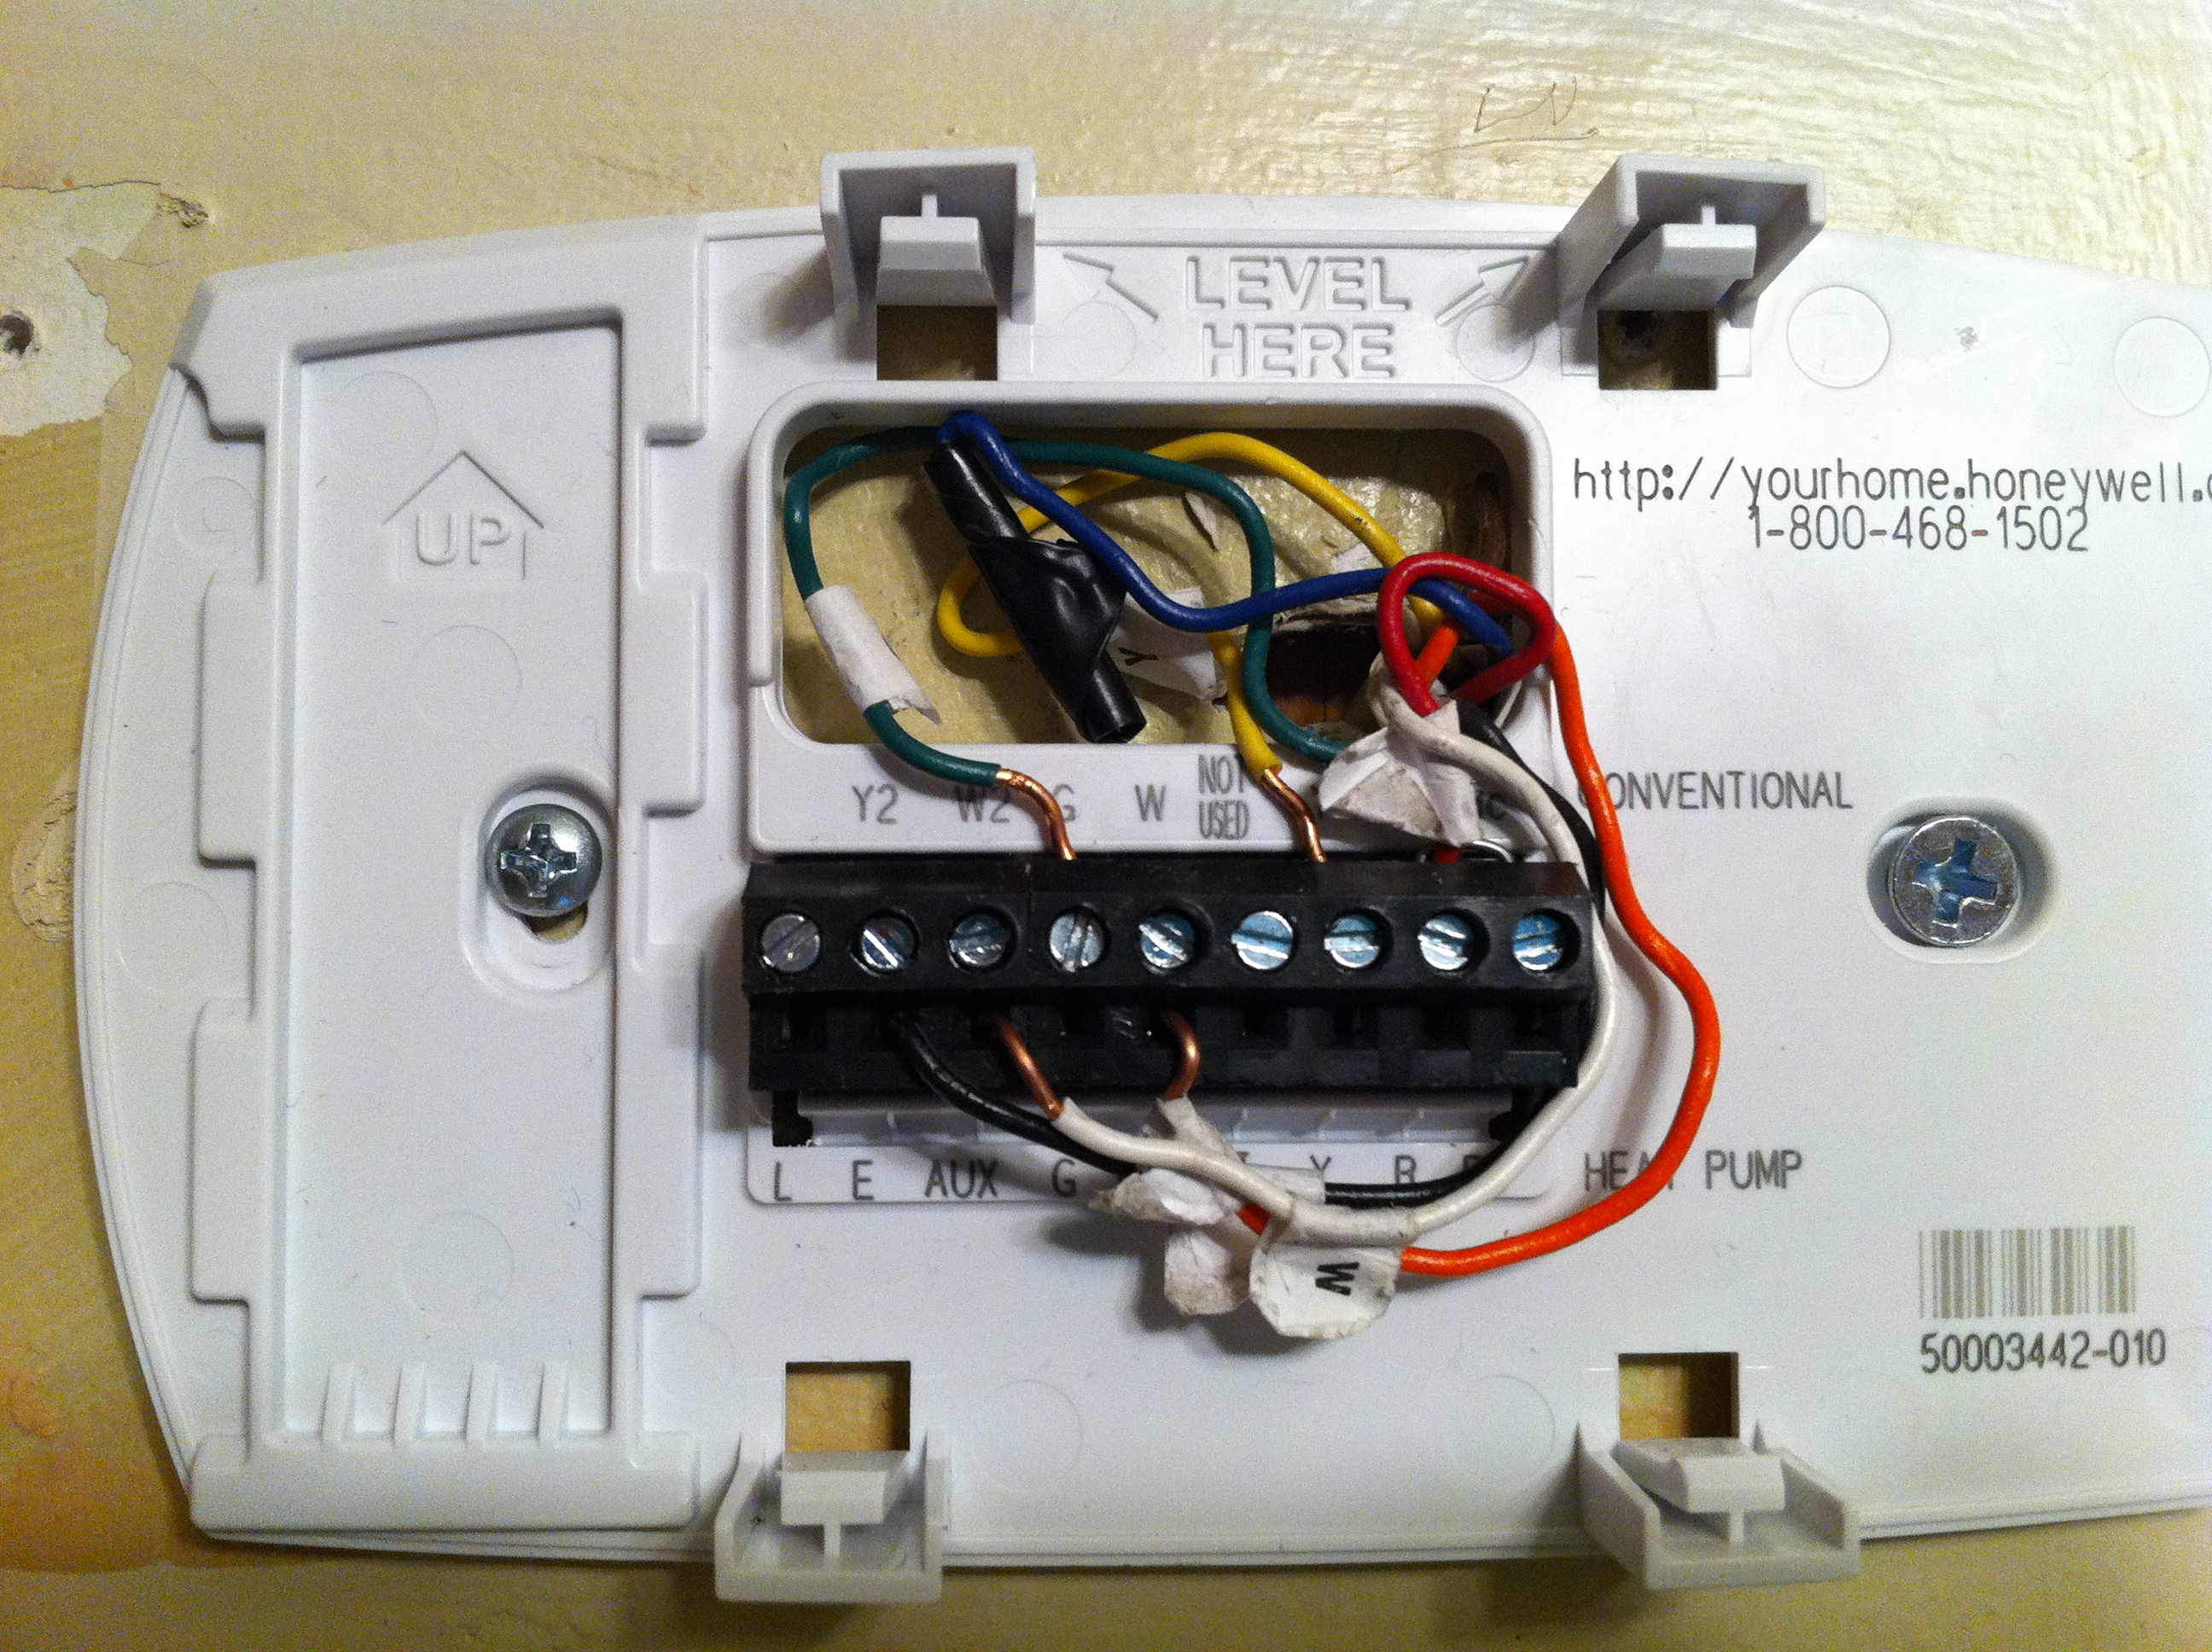 honeywell rth6450 thermostat wiring diagram heat pump Honeywell Thermostat Battery 2011 09 02 035912 photo